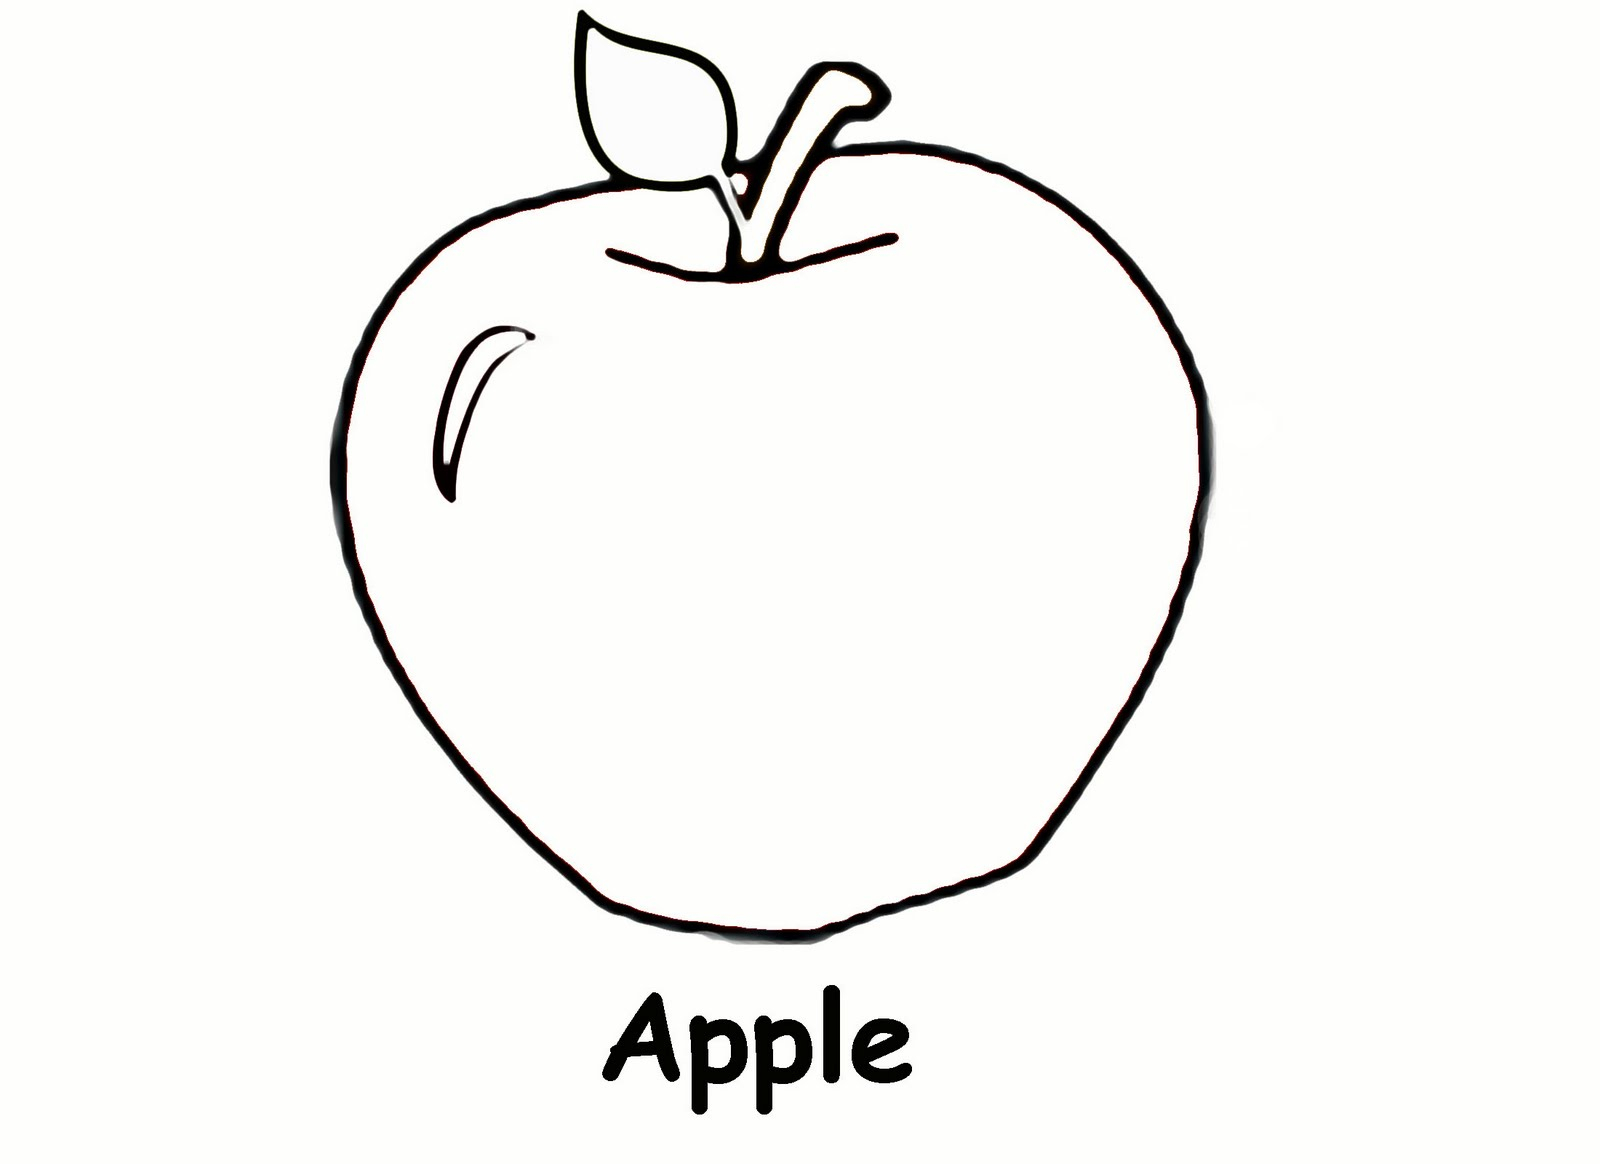 Free Printable Apple Coloring Pages for Kids Printable Of Leaf Coloring Pages for Preschool Gallery